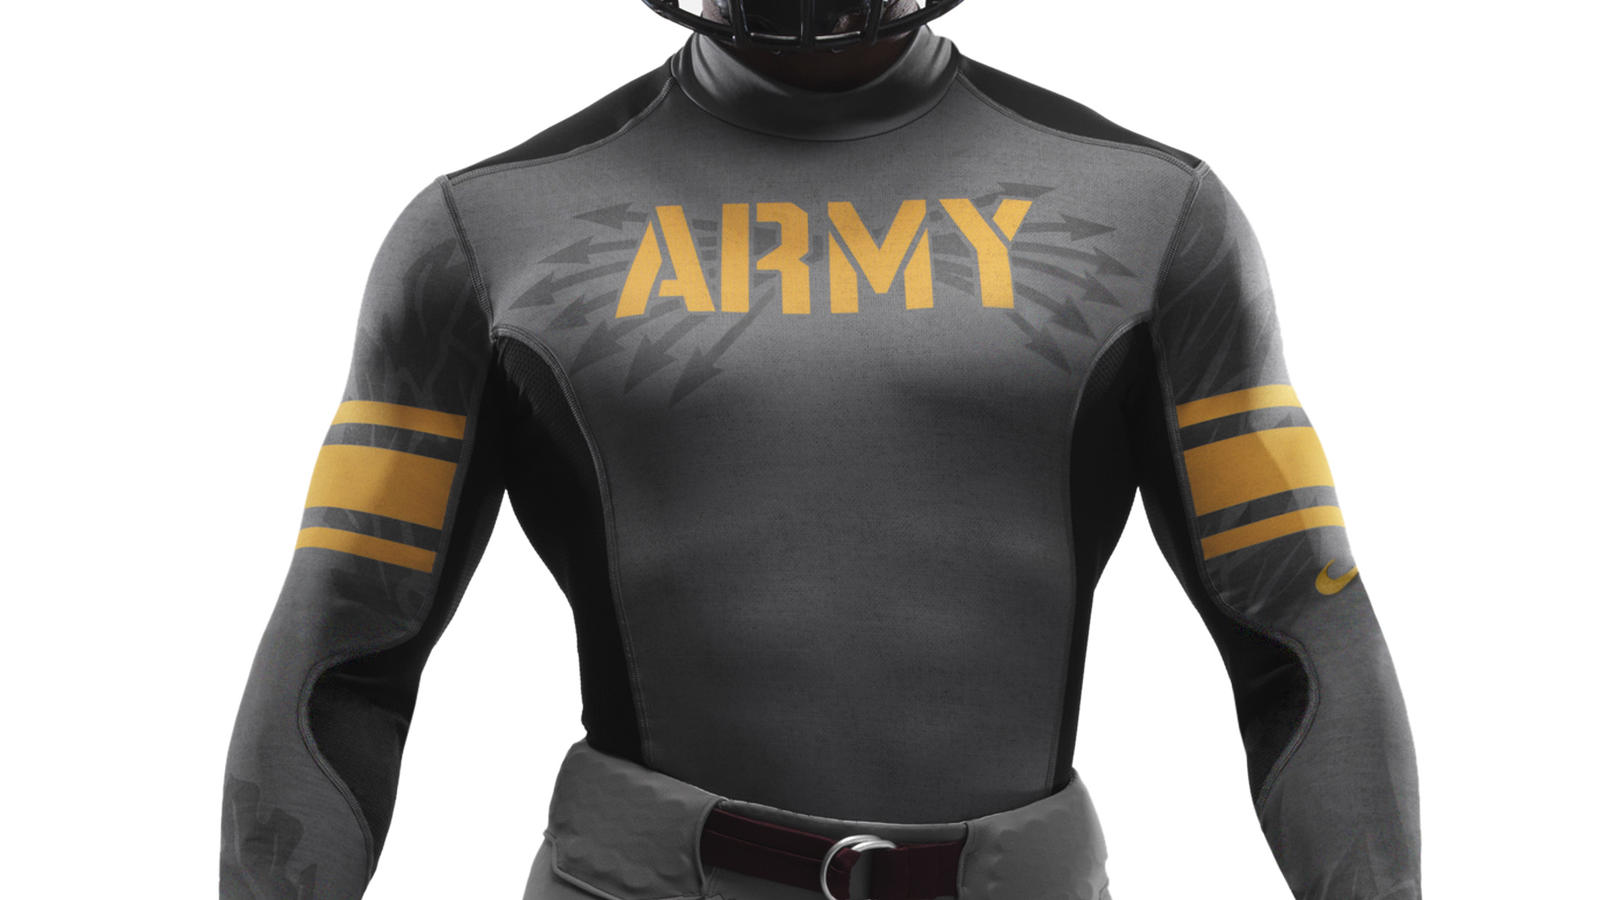 ncaa_fb13_uniforms_army_base_layer_tightversion_0011